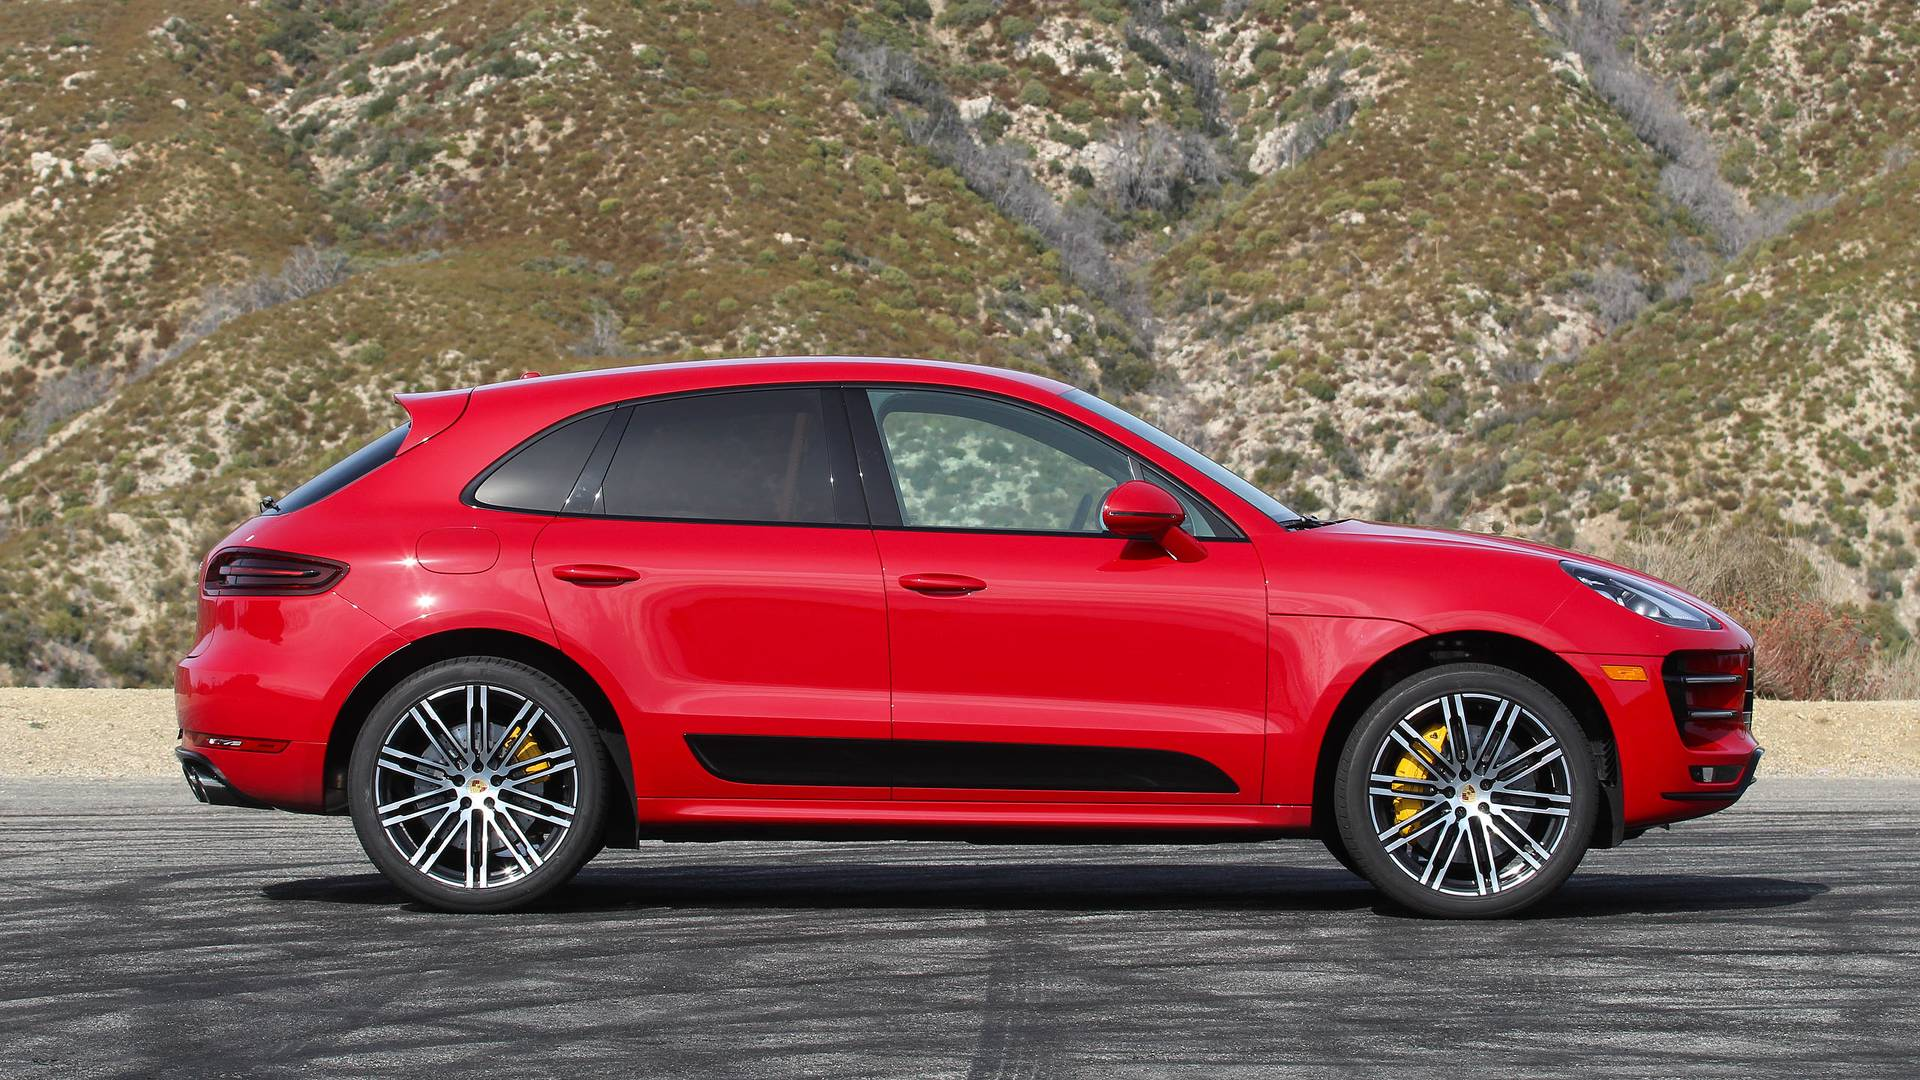 Best Luxury Compact Suv >> Rent a Porsche Macan Turbo - Exotic Car Rentals - Italy ...